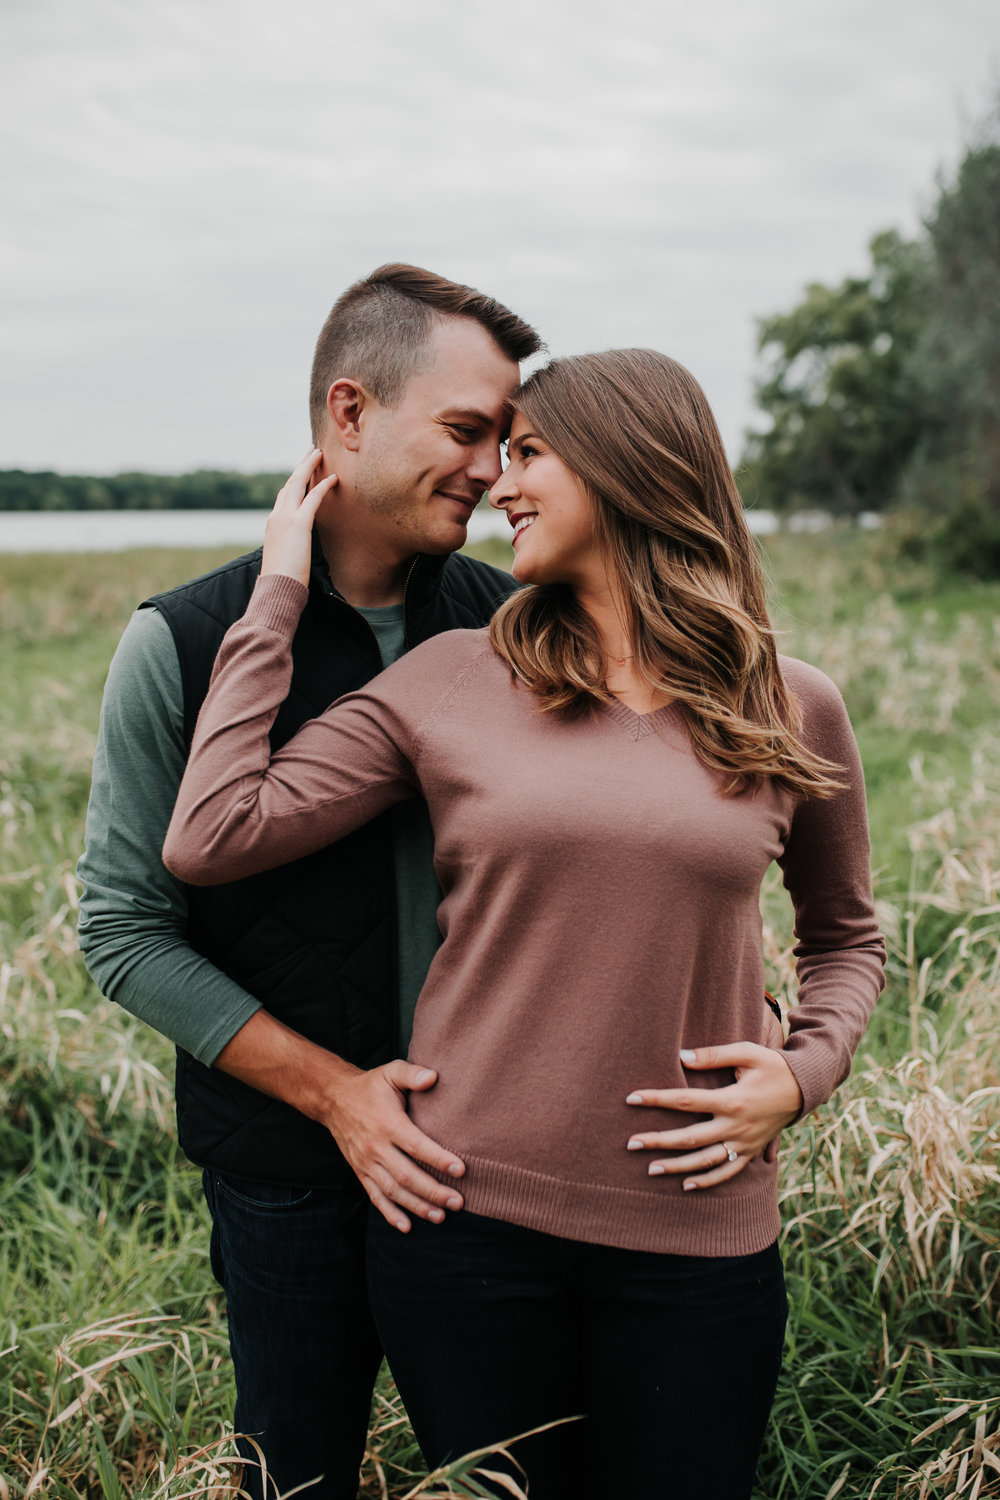 Paige & Nick - Engaged - Nathaniel Jensen Photography - Omaha Nebraska Wedding Photograper - Omaha Nebraska Engagement Session - Chalco Hills Engagement Session-85.jpg